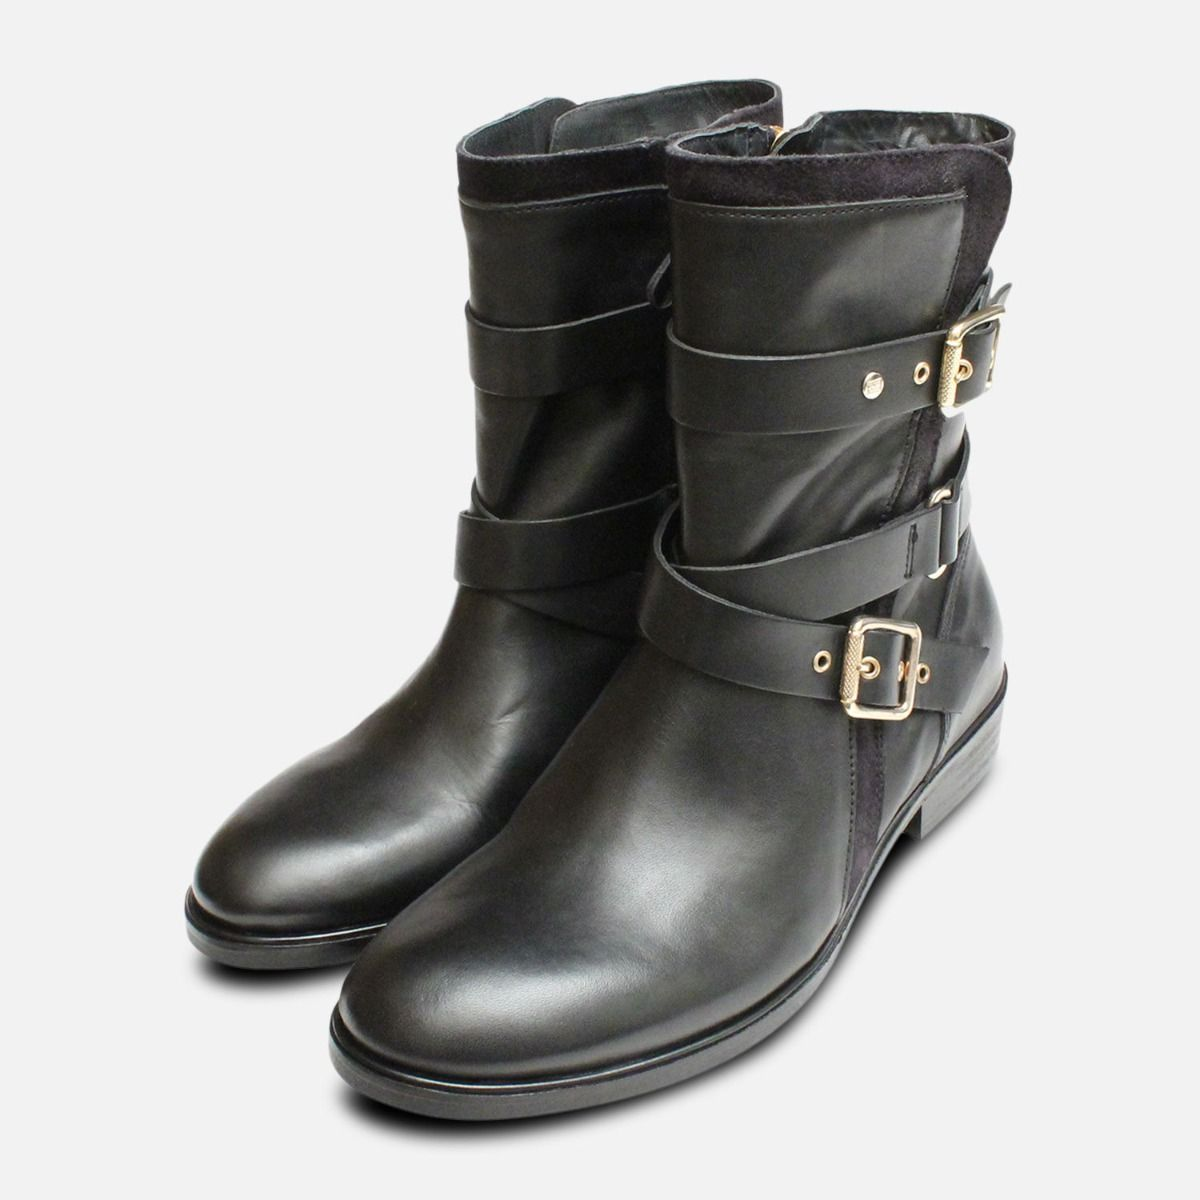 10fe6ae4cc4eb Gold Buckle Tommy Hilfiger Polly Biker Boots in Black